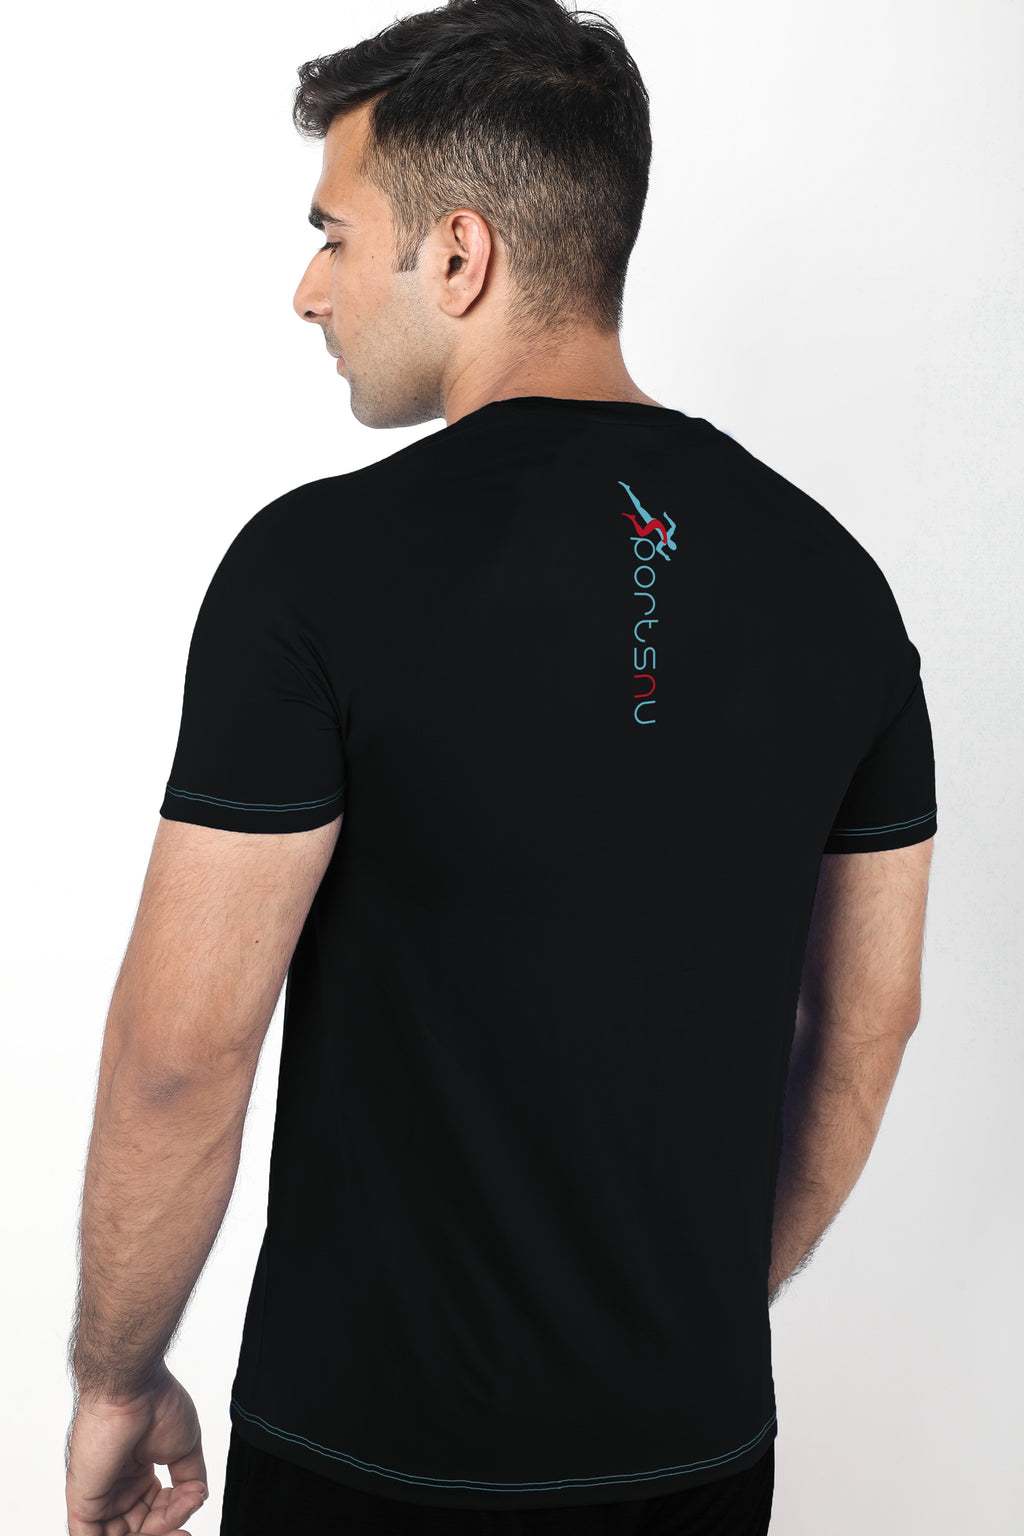 Grit Gym T-Shirt For Men - Black